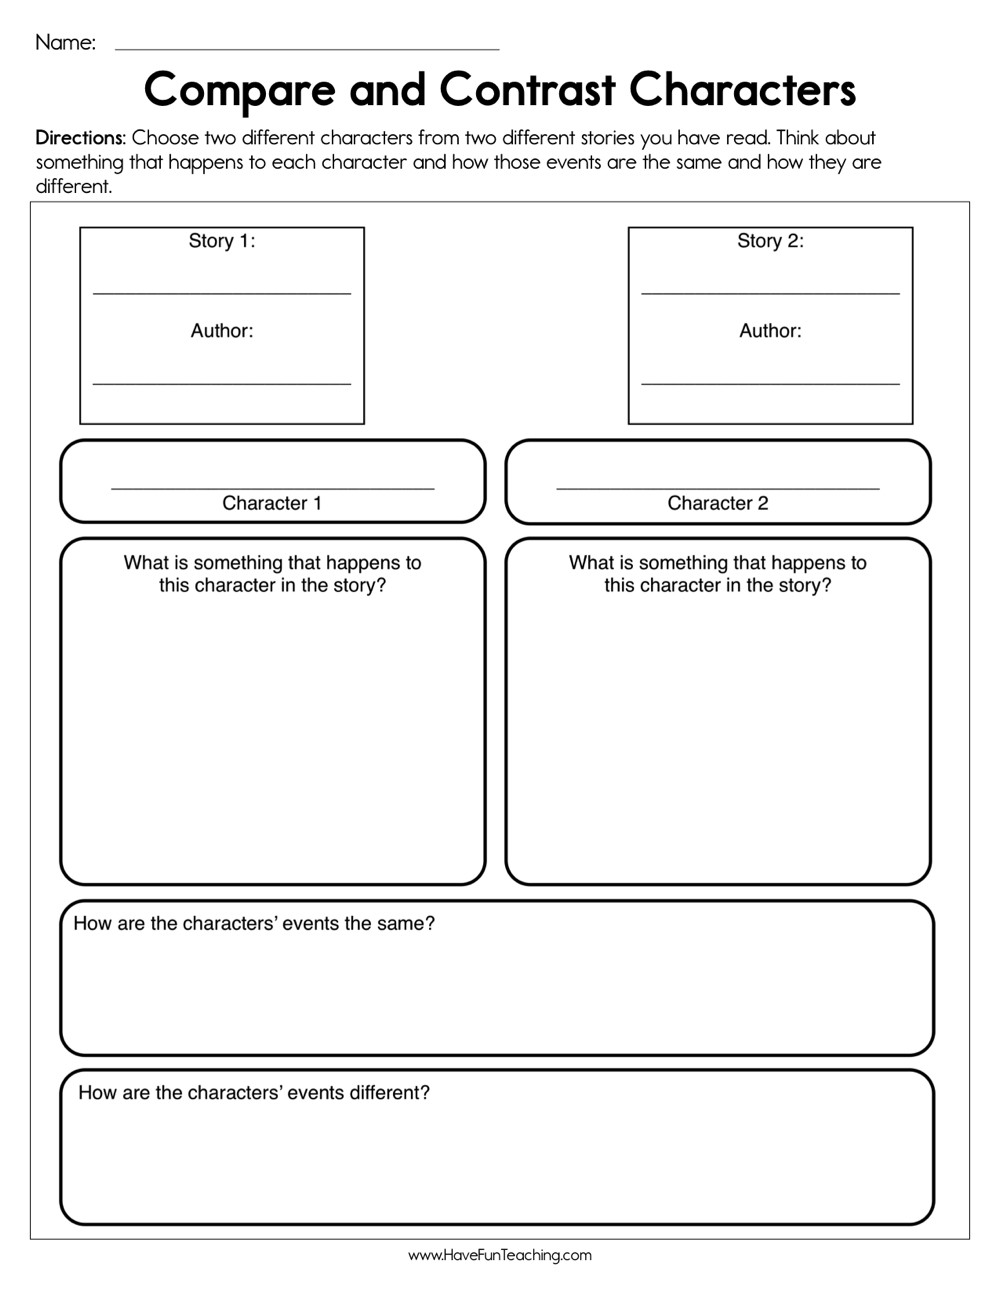 medium resolution of Compare and Contrast Characters Worksheet • Have Fun Teaching